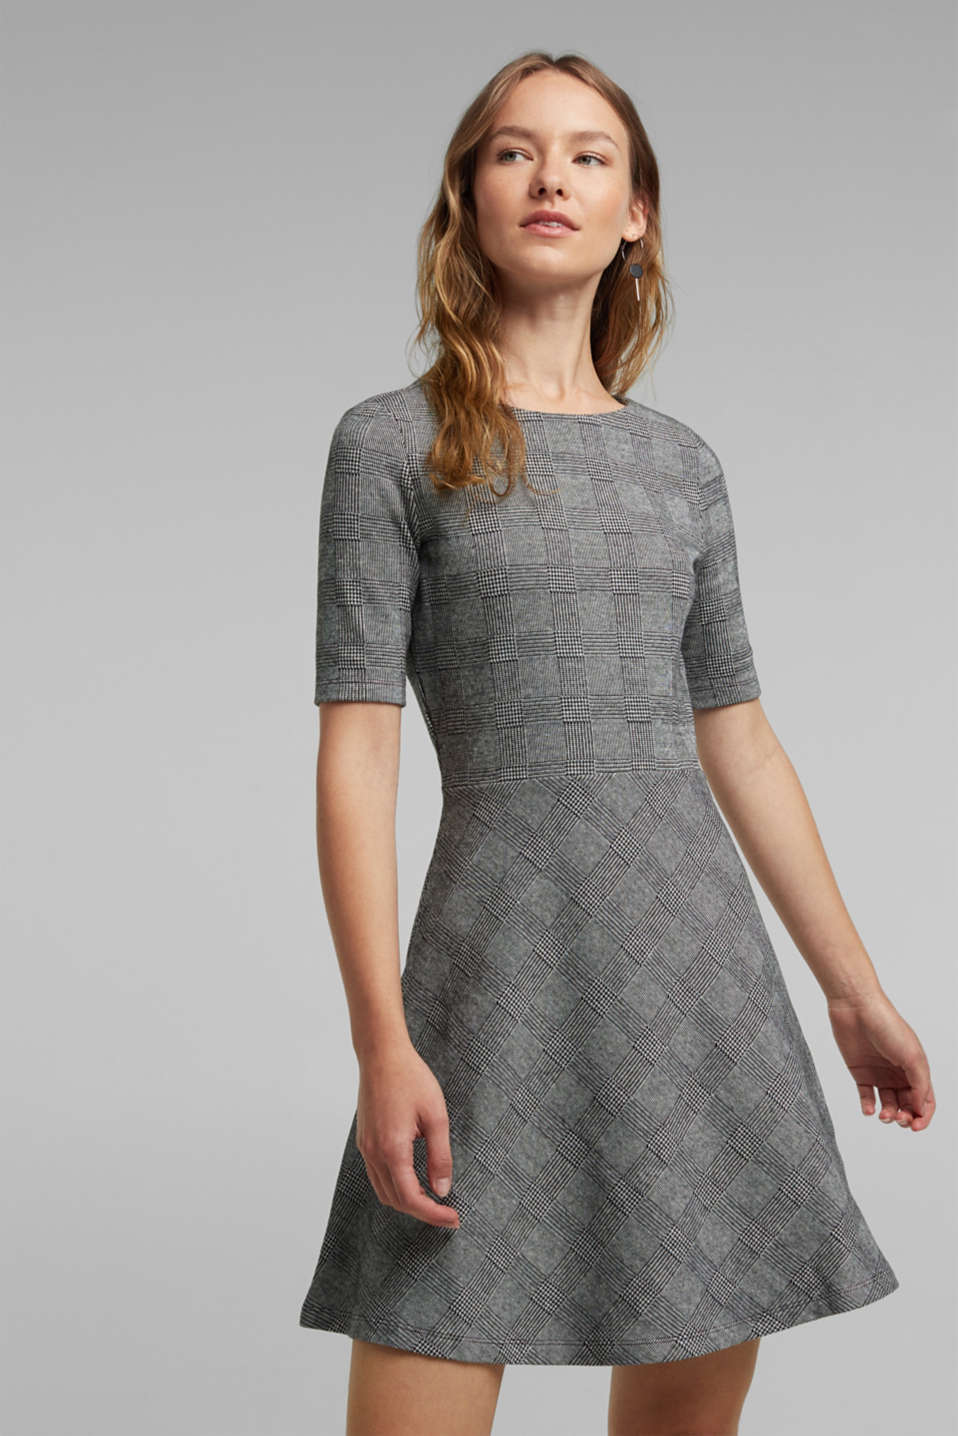 edc - Jersey dress with stretch for comfort